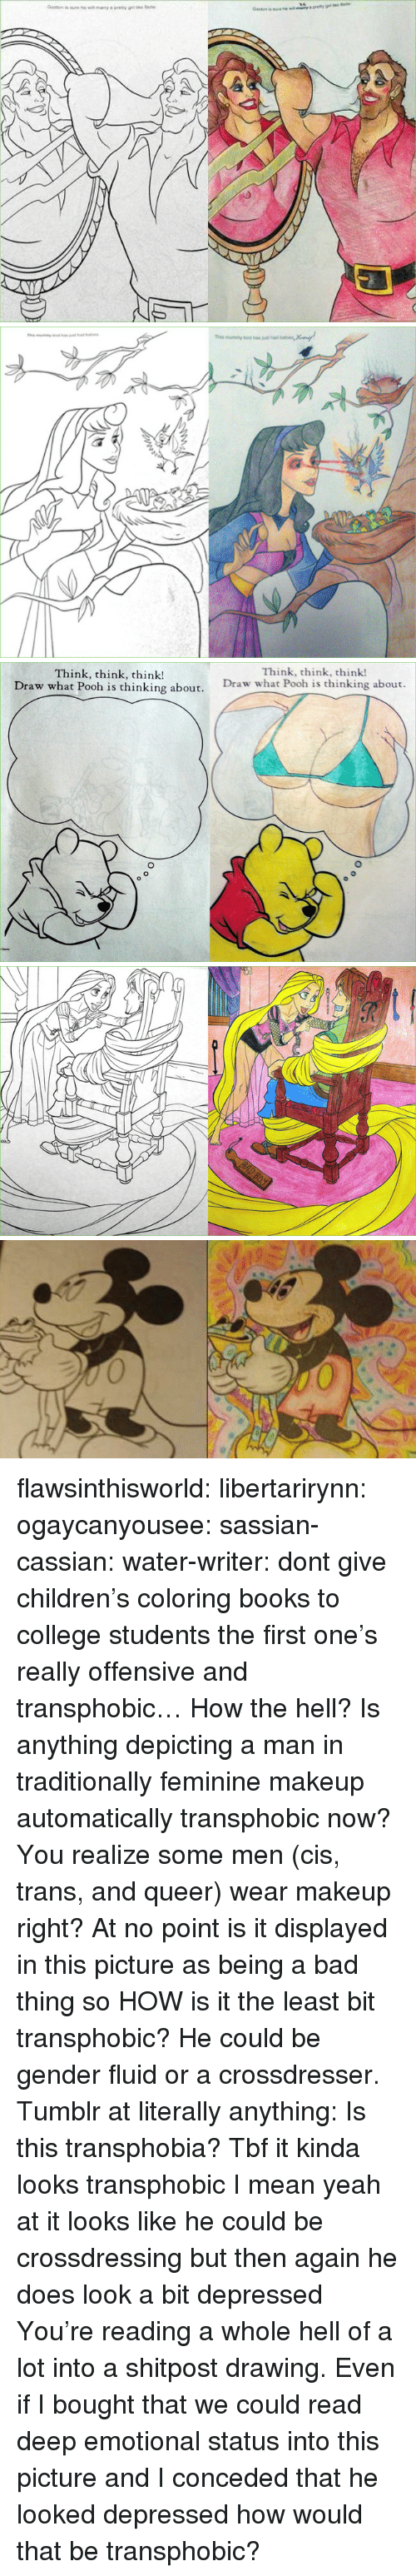 Bad, Books, and Children: Think, think, think!  Draw what Pooh is thinking about.  Think, think, think!  Draw what Pooh is thinking about. flawsinthisworld:  libertarirynn:  ogaycanyousee:  sassian-cassian: water-writer:  dont give children's coloring books to college students  the first one's really offensive and transphobic…  How the hell? Is anything depicting a man in traditionally feminine makeup automatically transphobic now? You realize some men (cis, trans, and queer) wear makeup right? At no point is it displayed in this picture as being a bad thing so HOW is it the least bit transphobic? He could be gender fluid or a crossdresser.   Tumblr at literally anything: Is this transphobia?  Tbf it kinda looks transphobic I mean yeah at it looks like he could be crossdressing but then again he does look a bit depressed   You're reading a whole hell of a lot into a shitpost drawing. Even if I bought that we could read deep emotional status into this picture and I conceded that he looked depressed how would that be transphobic?